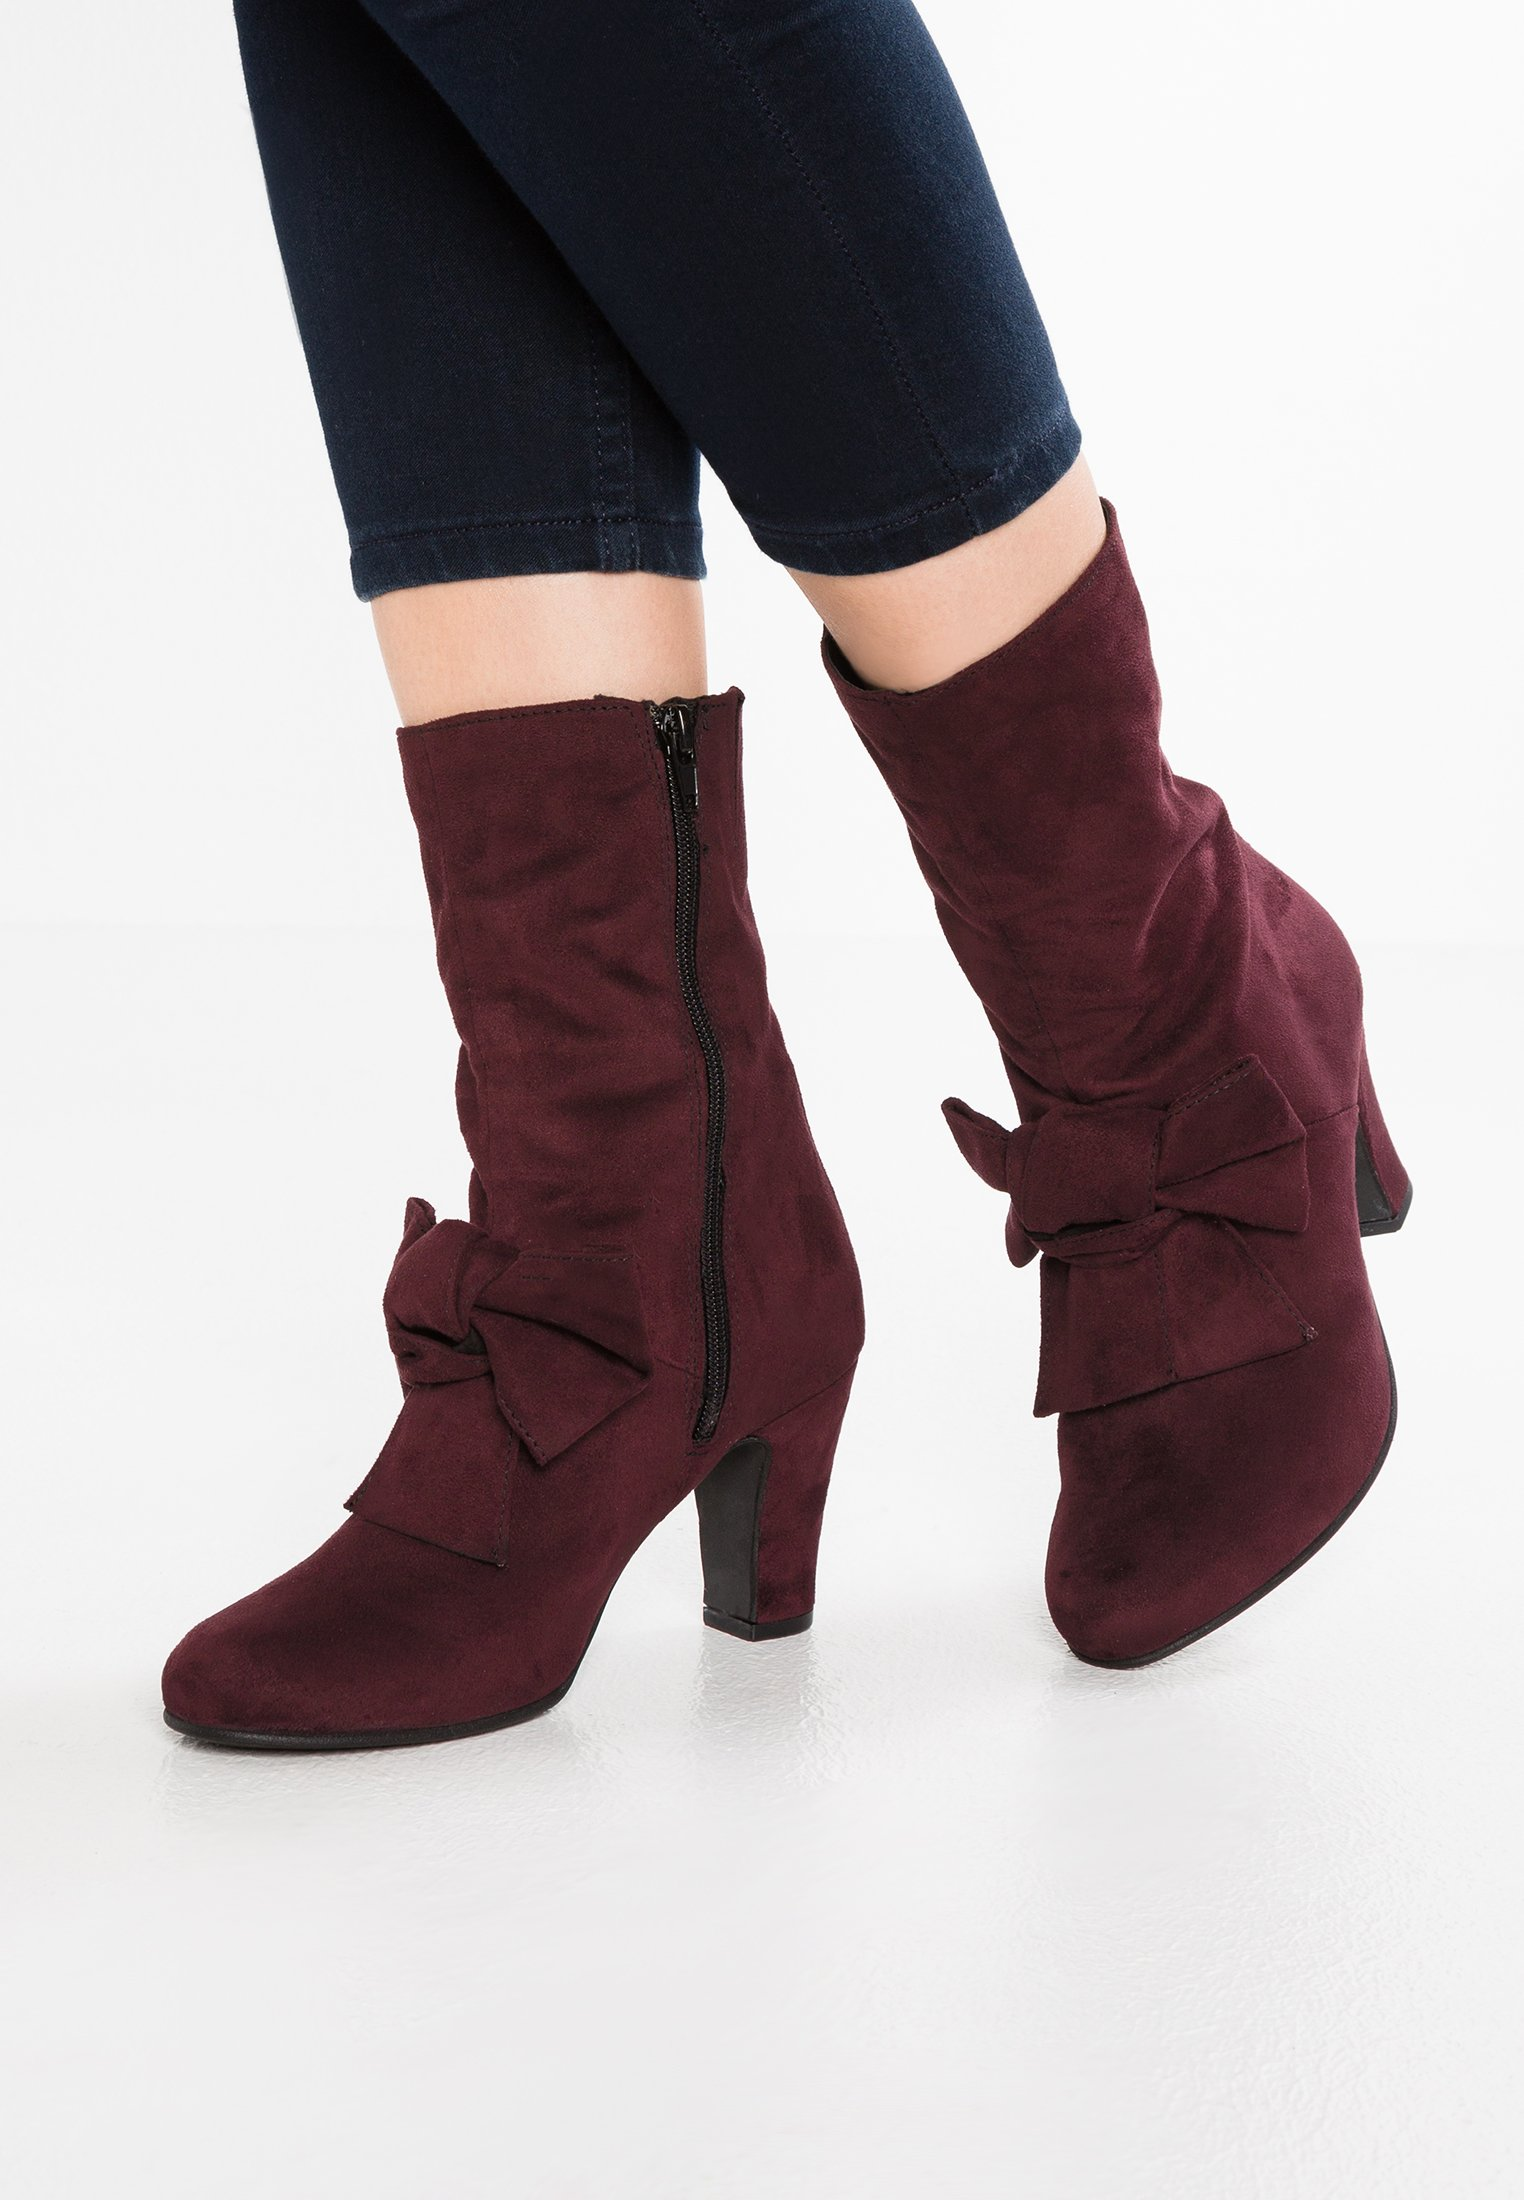 Tamaris BottinesBurgundy Tamaris BottinesBurgundy BottinesBurgundy Tamaris Tamaris Tamaris BottinesBurgundy 3jLq5AR4